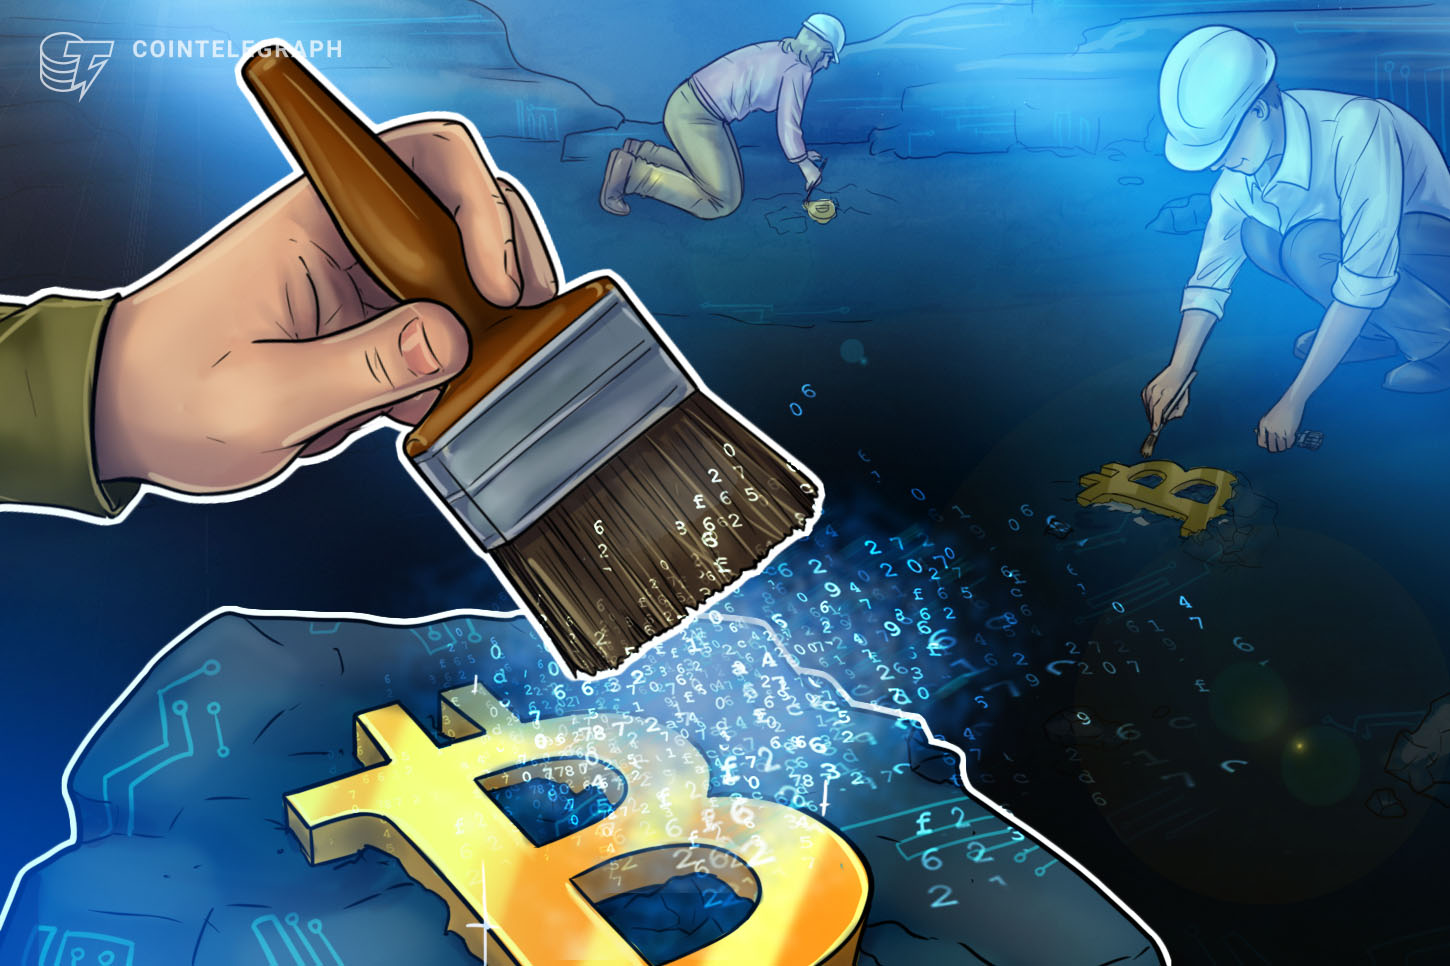 Bitcoin mining estimated to represent 0.4% of global emissions in 2030